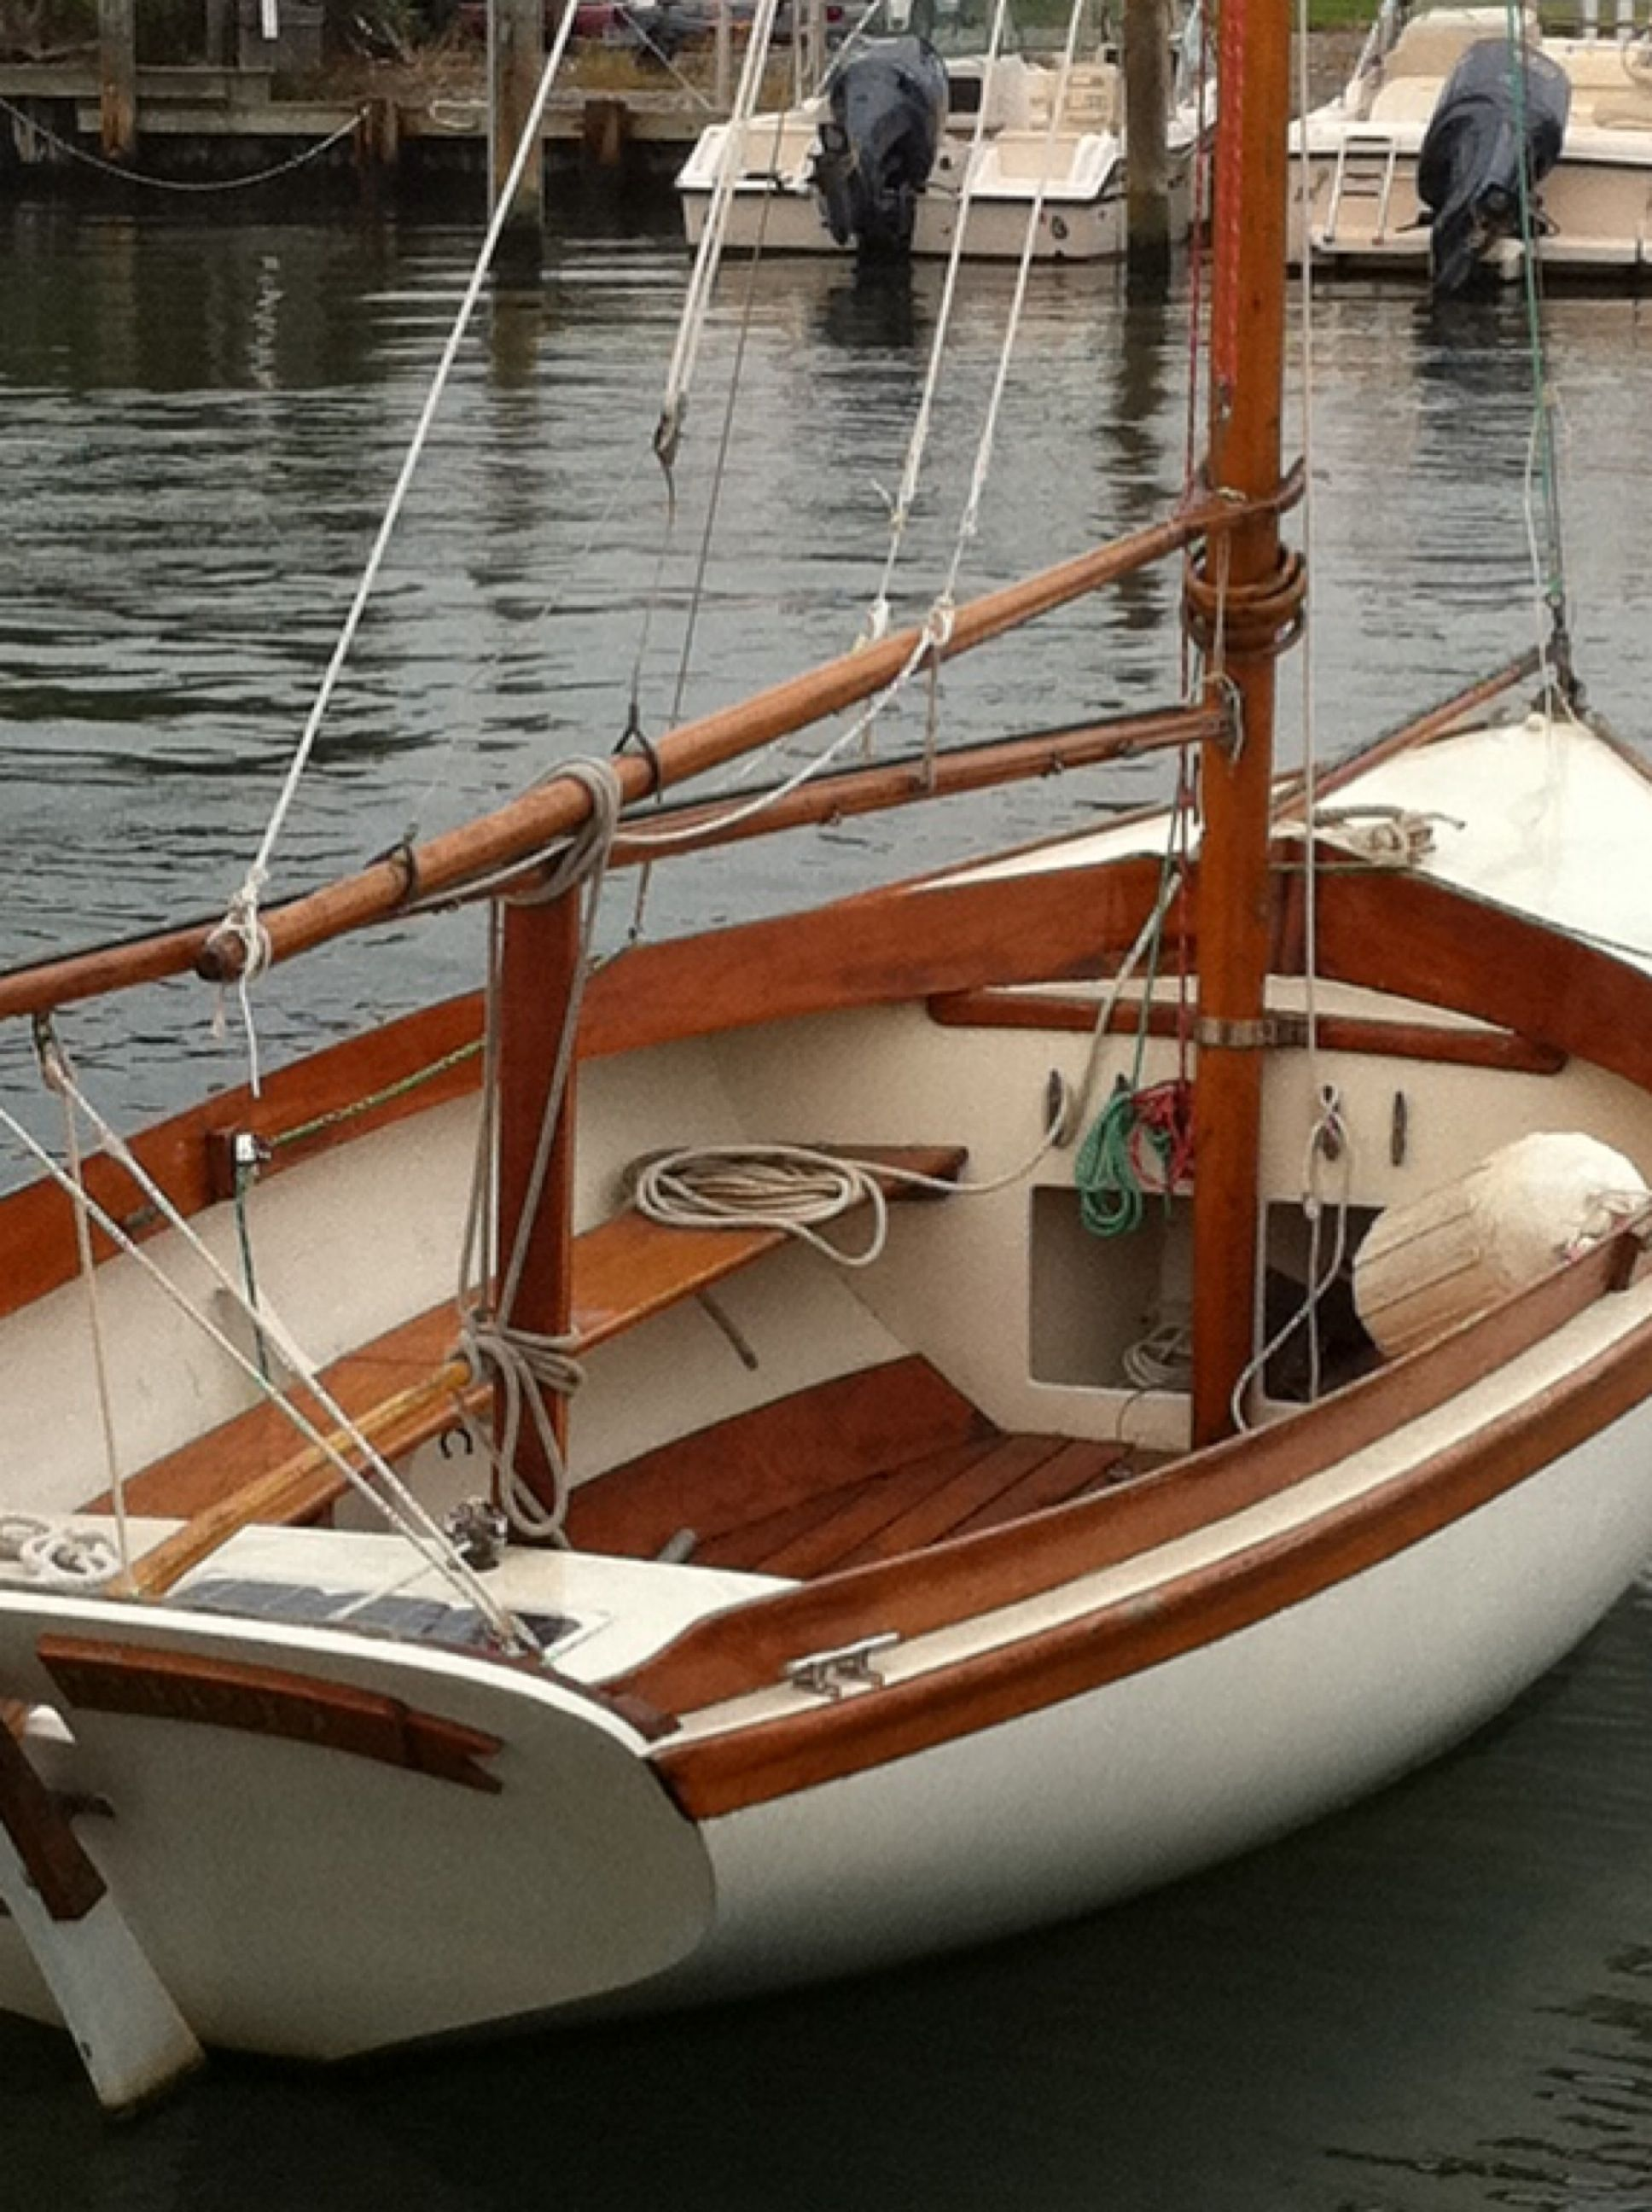 herreshoff 12.5. what a beautiful little boat. perfect